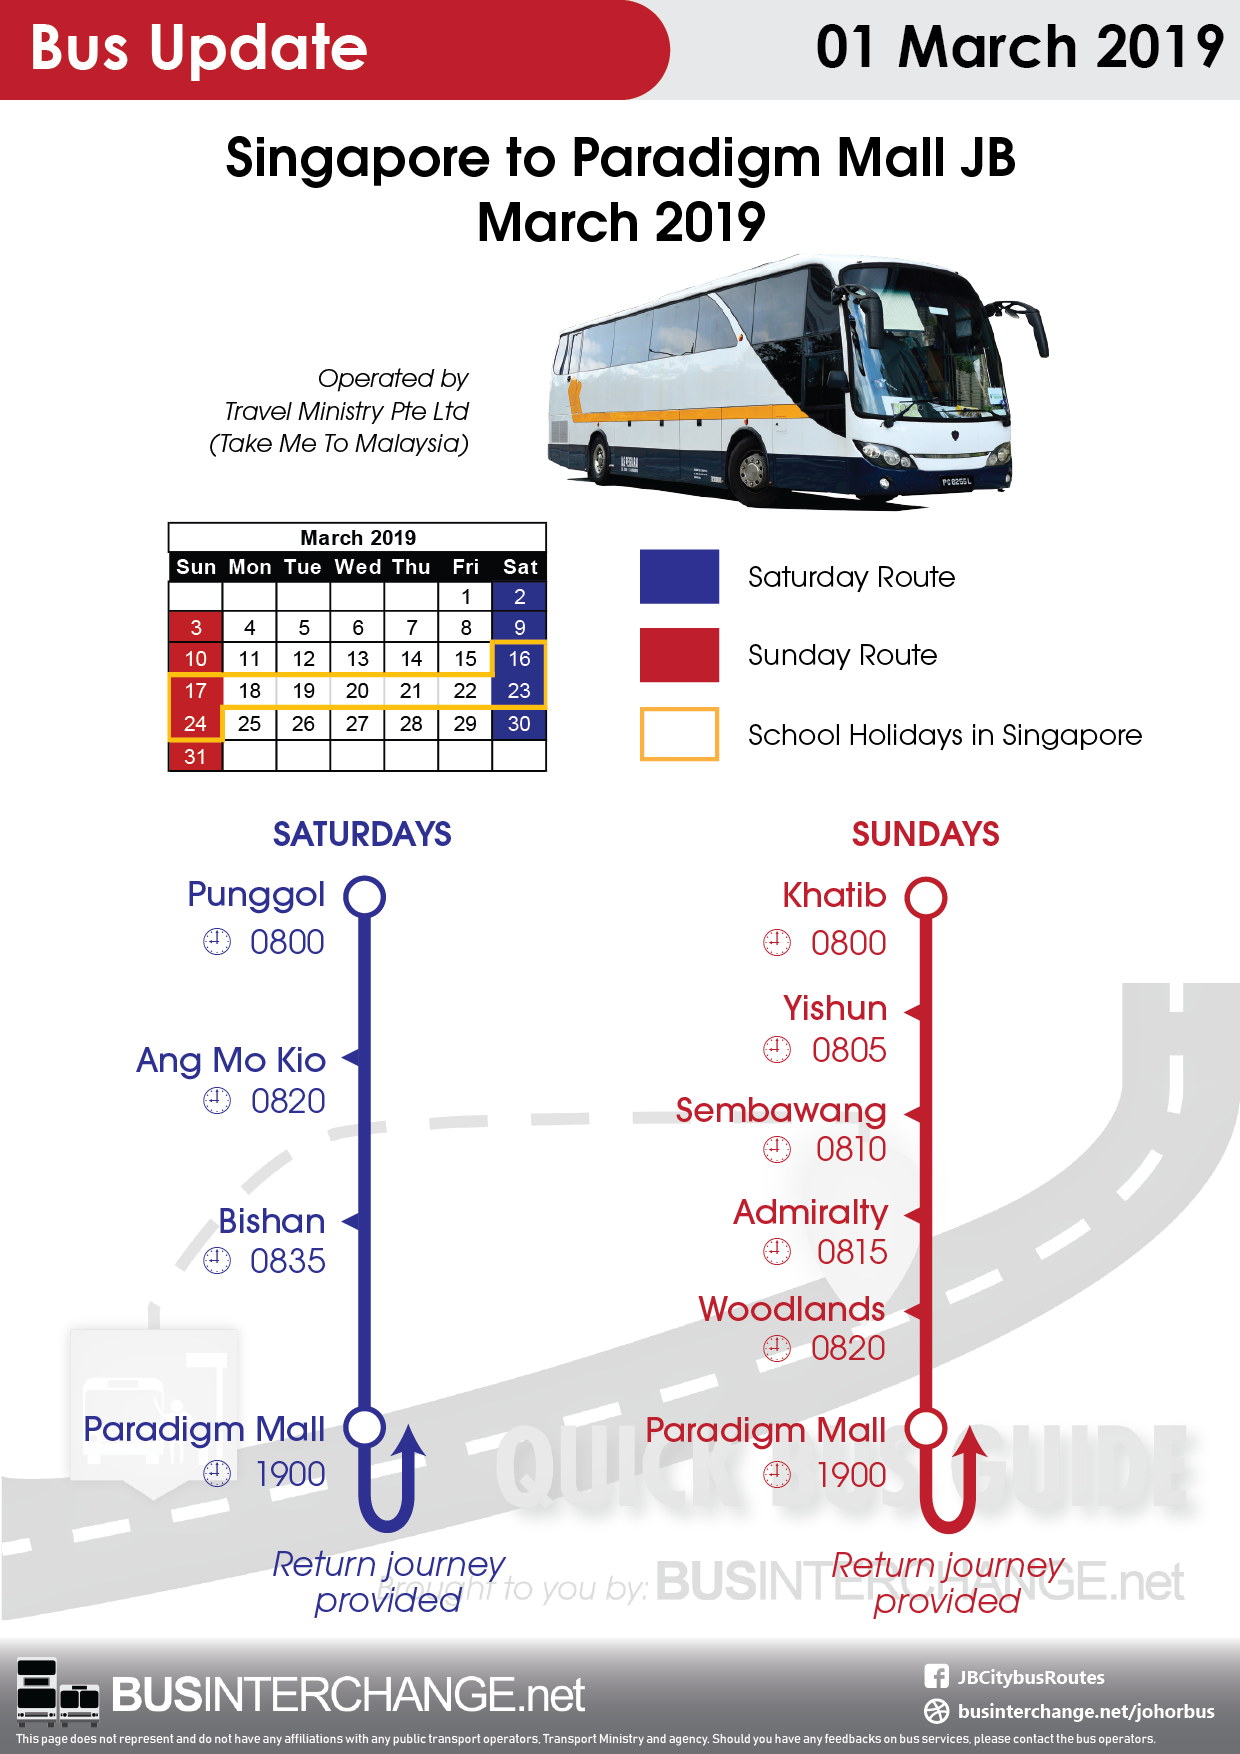 Bus routing from Singapore to Paradigm Mall in March 2019.